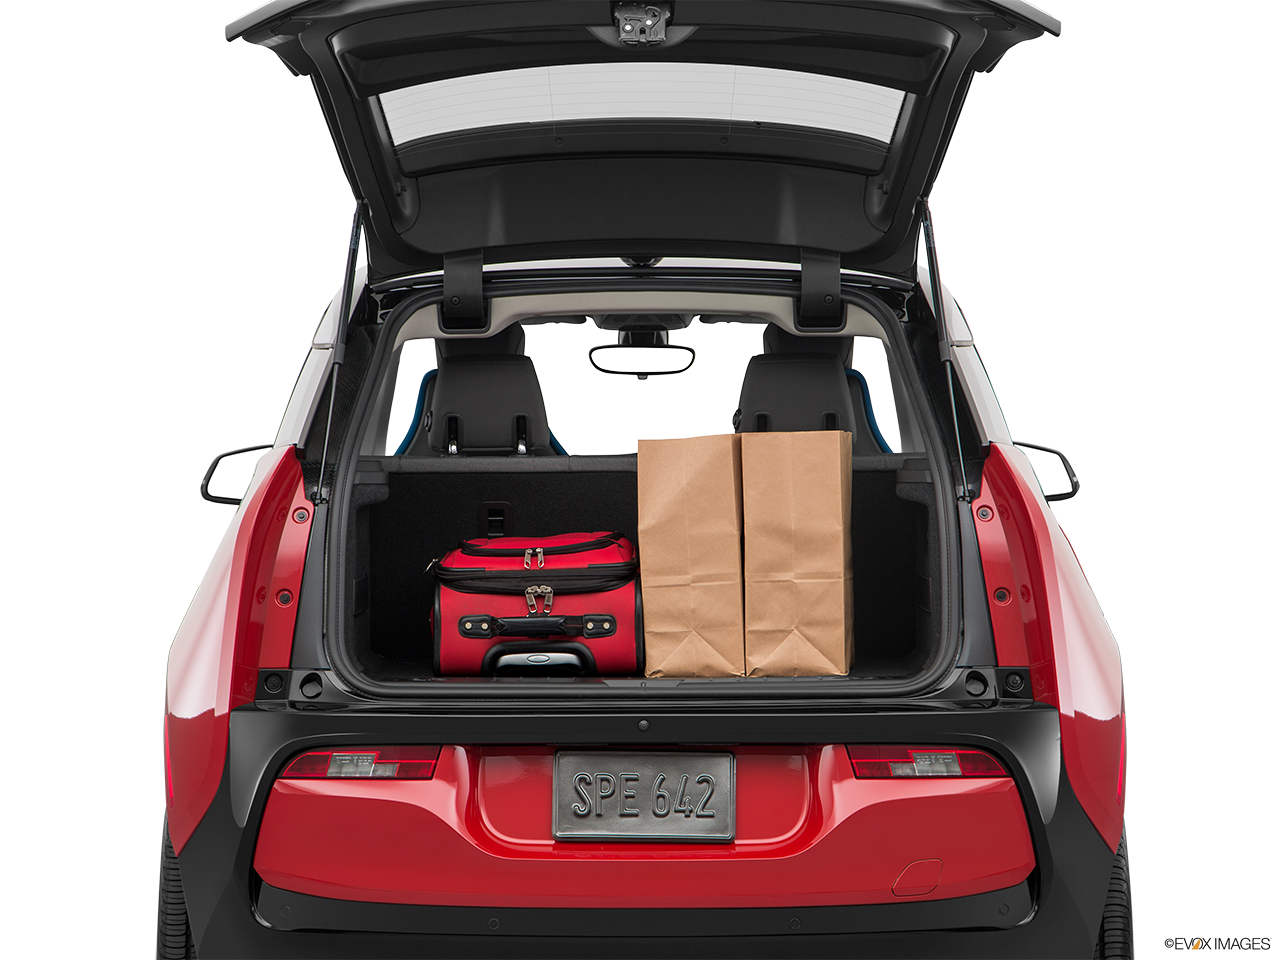 Trunk view of the BMW i3